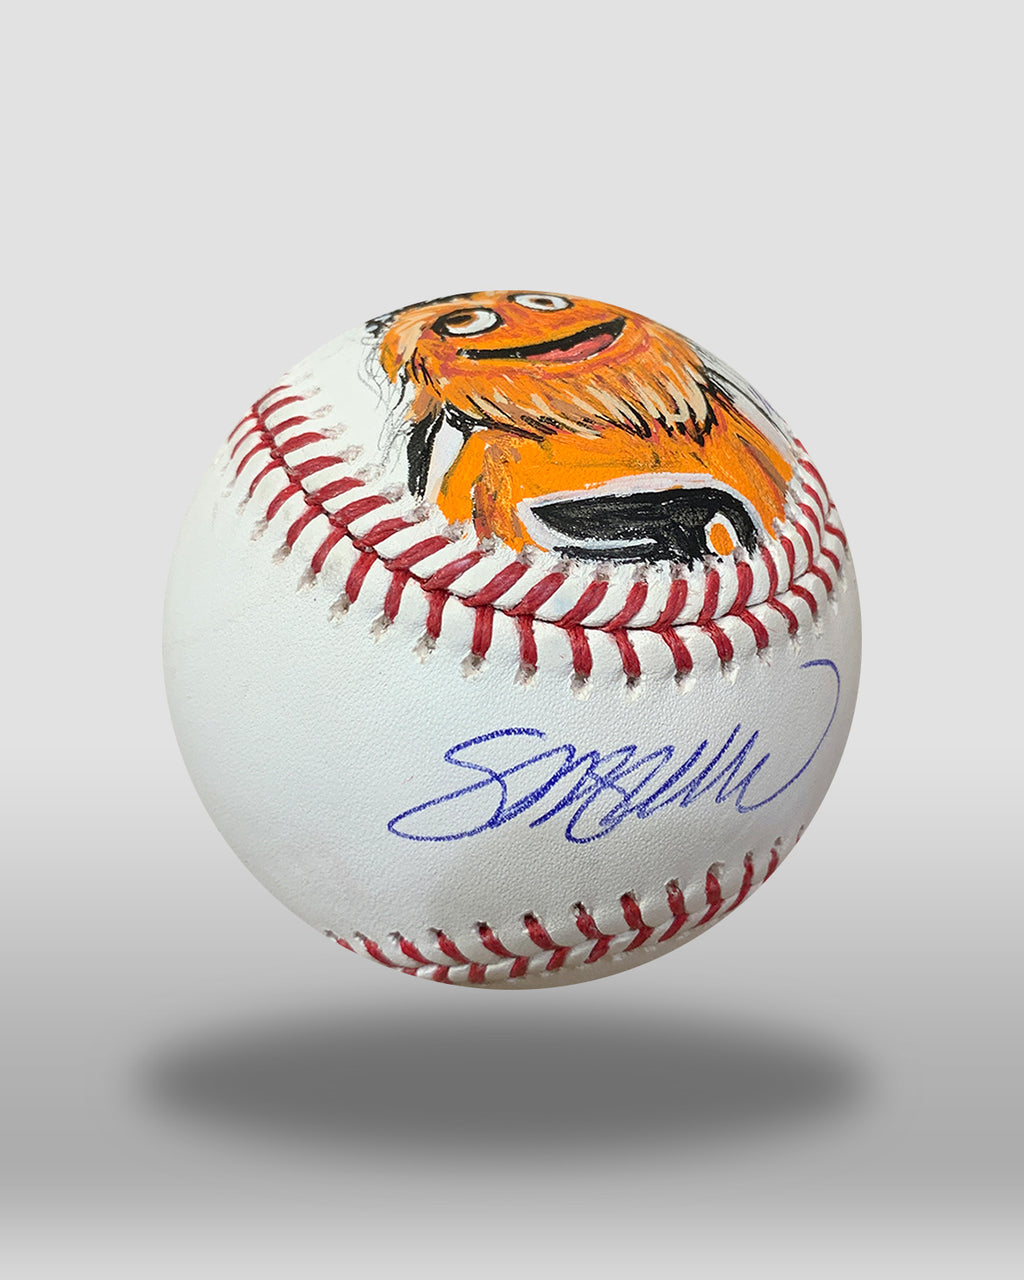 Gritty Hand-Painted Baseball Art